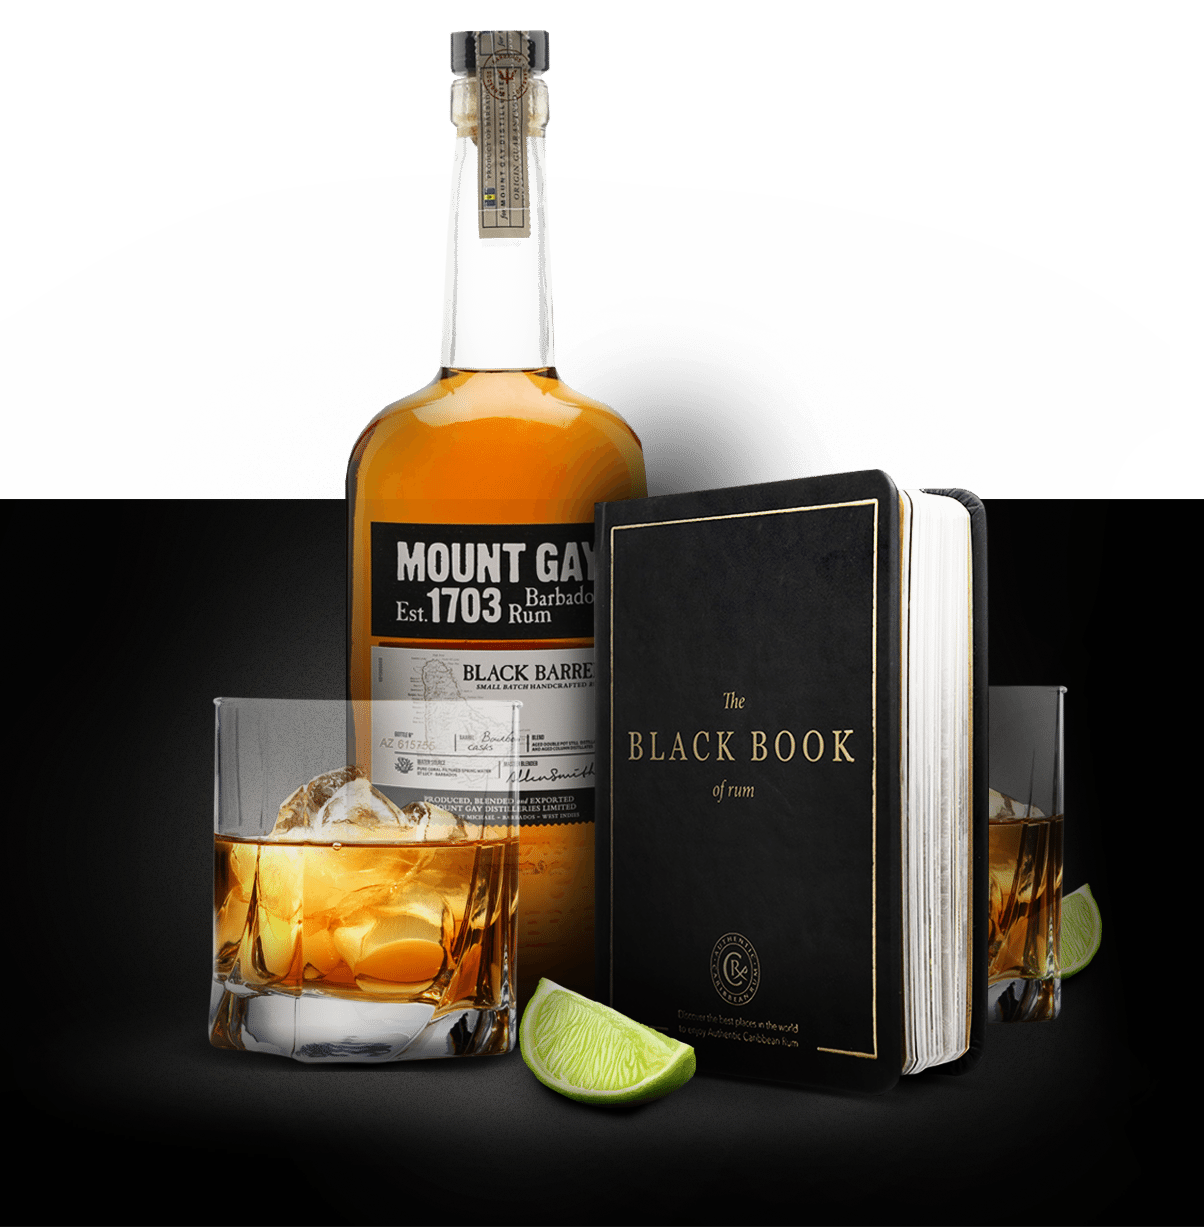 Black Book Of Rum and Mount Gay Rum Bottle